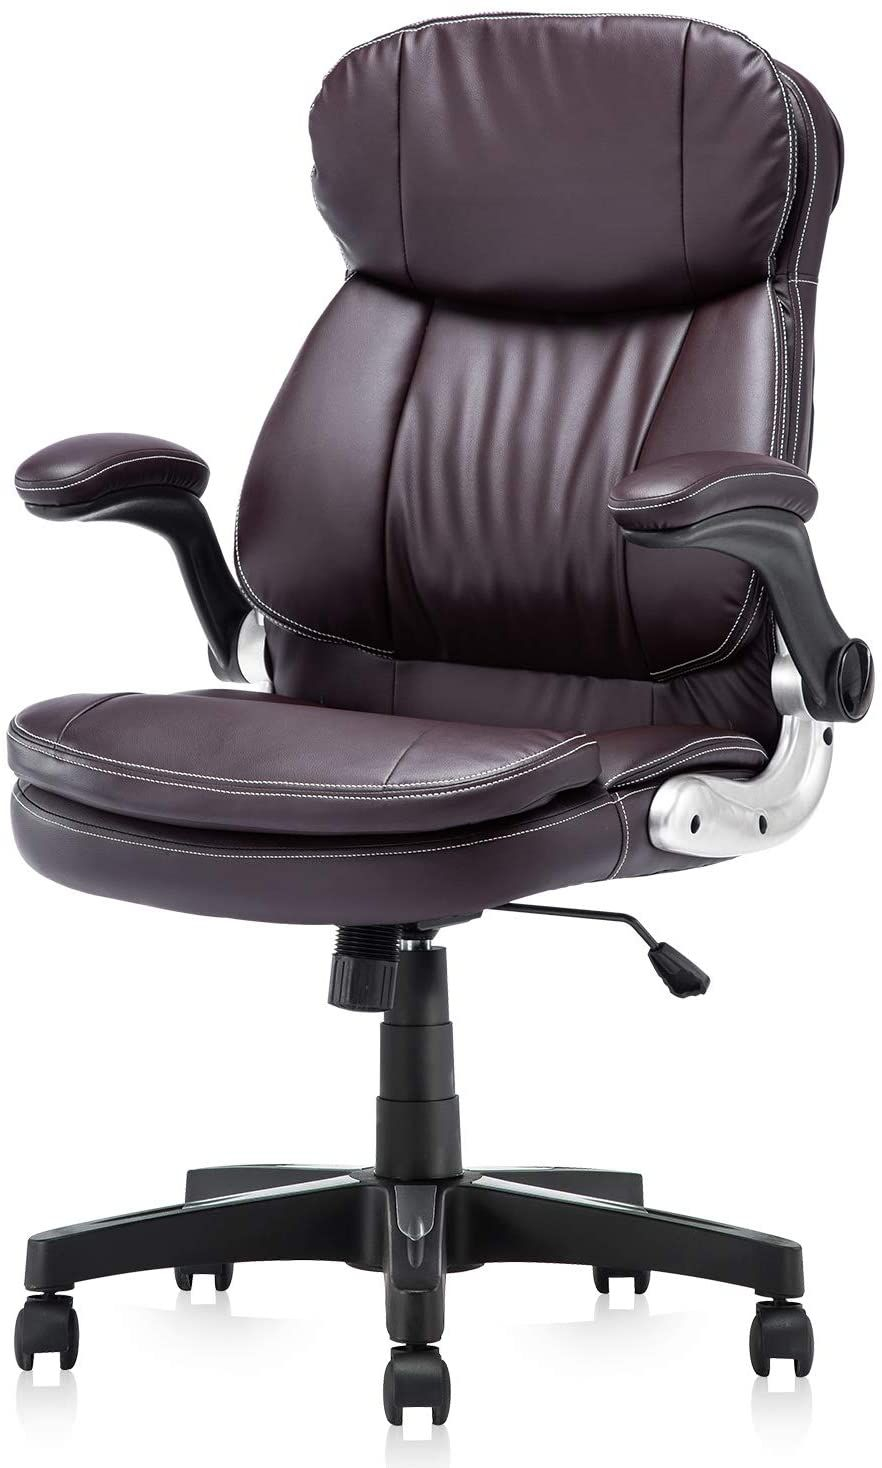 Kerms High Back Pu Leather Executive Office Chair Adjustable Recline Locking Flip Up Arms Computer Office Chair Brown Leather Office Chair Black Office Chair Office chairs with back support